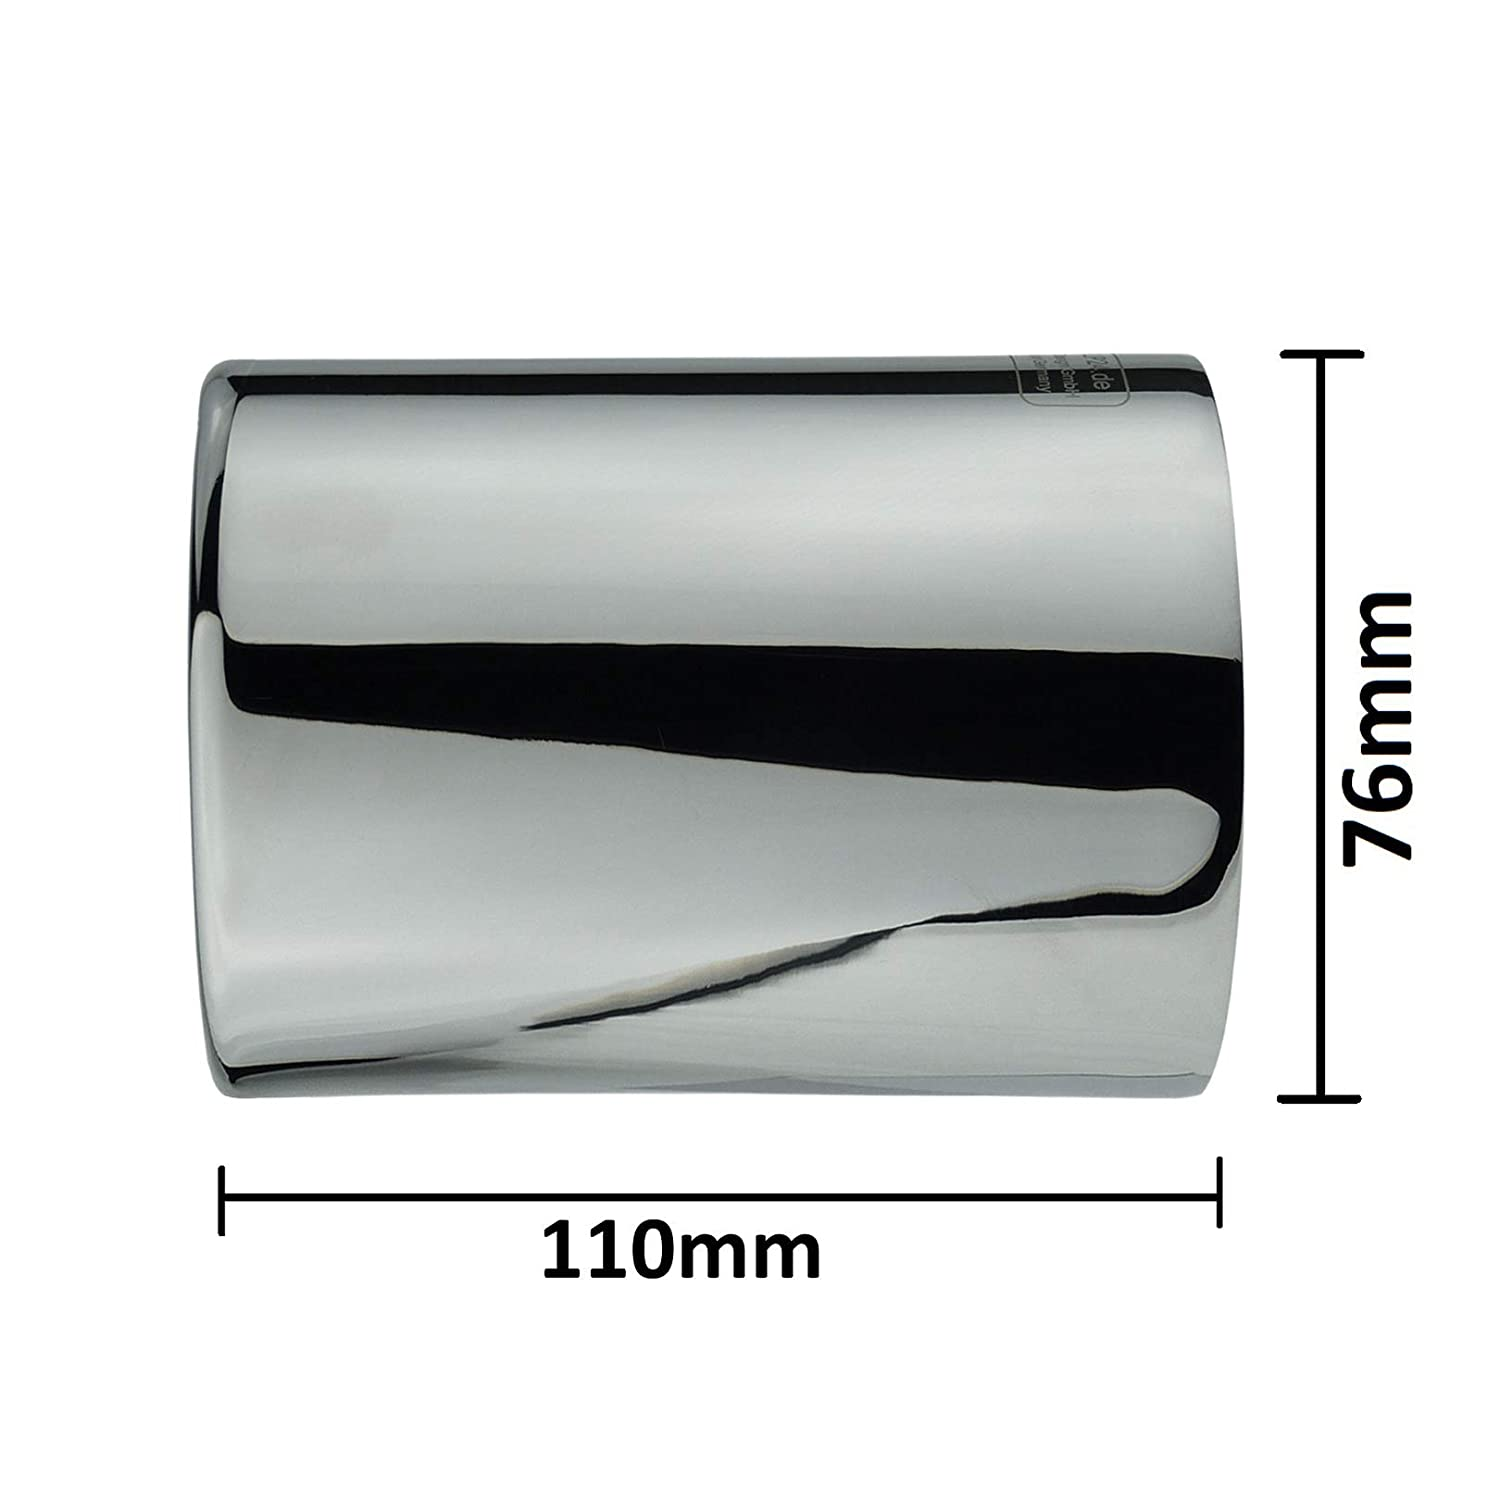 L/&P A304 1 Exhaust Trim Stainless Steel 76 mm Mirror Polished Chrome Plug /& Play Tailpipe Trim Tailpipe Trim Tailpipe Trim Tailpipe Reference Numbers 1830 7622764-1830 7622762